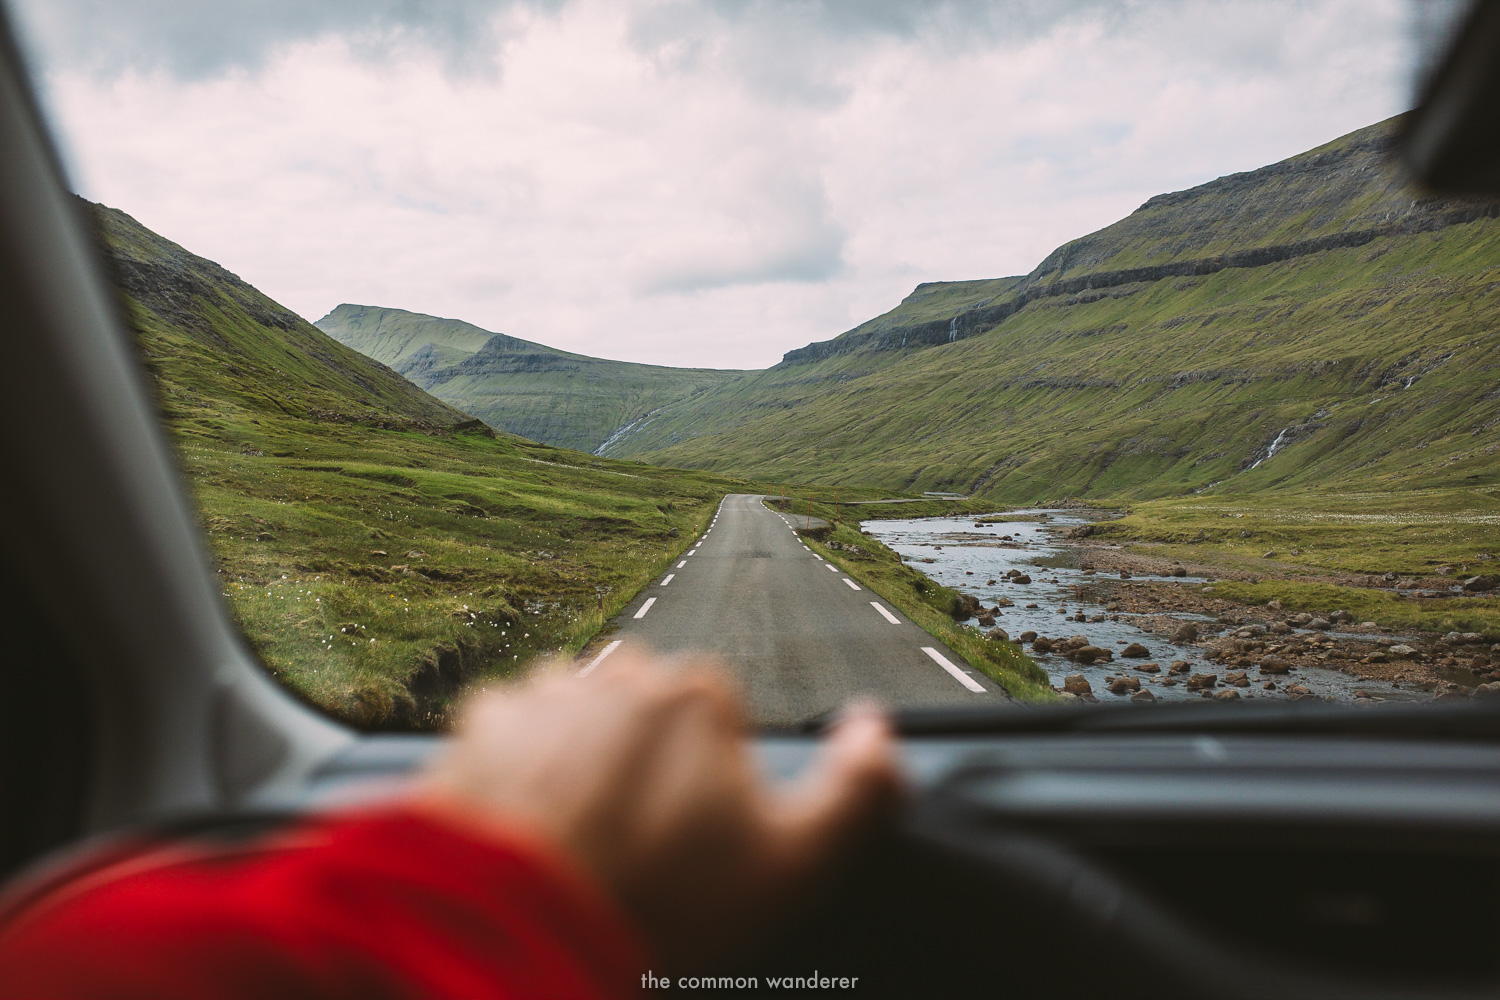 The Common Wanderer_-Faroe Islands 3.jpg